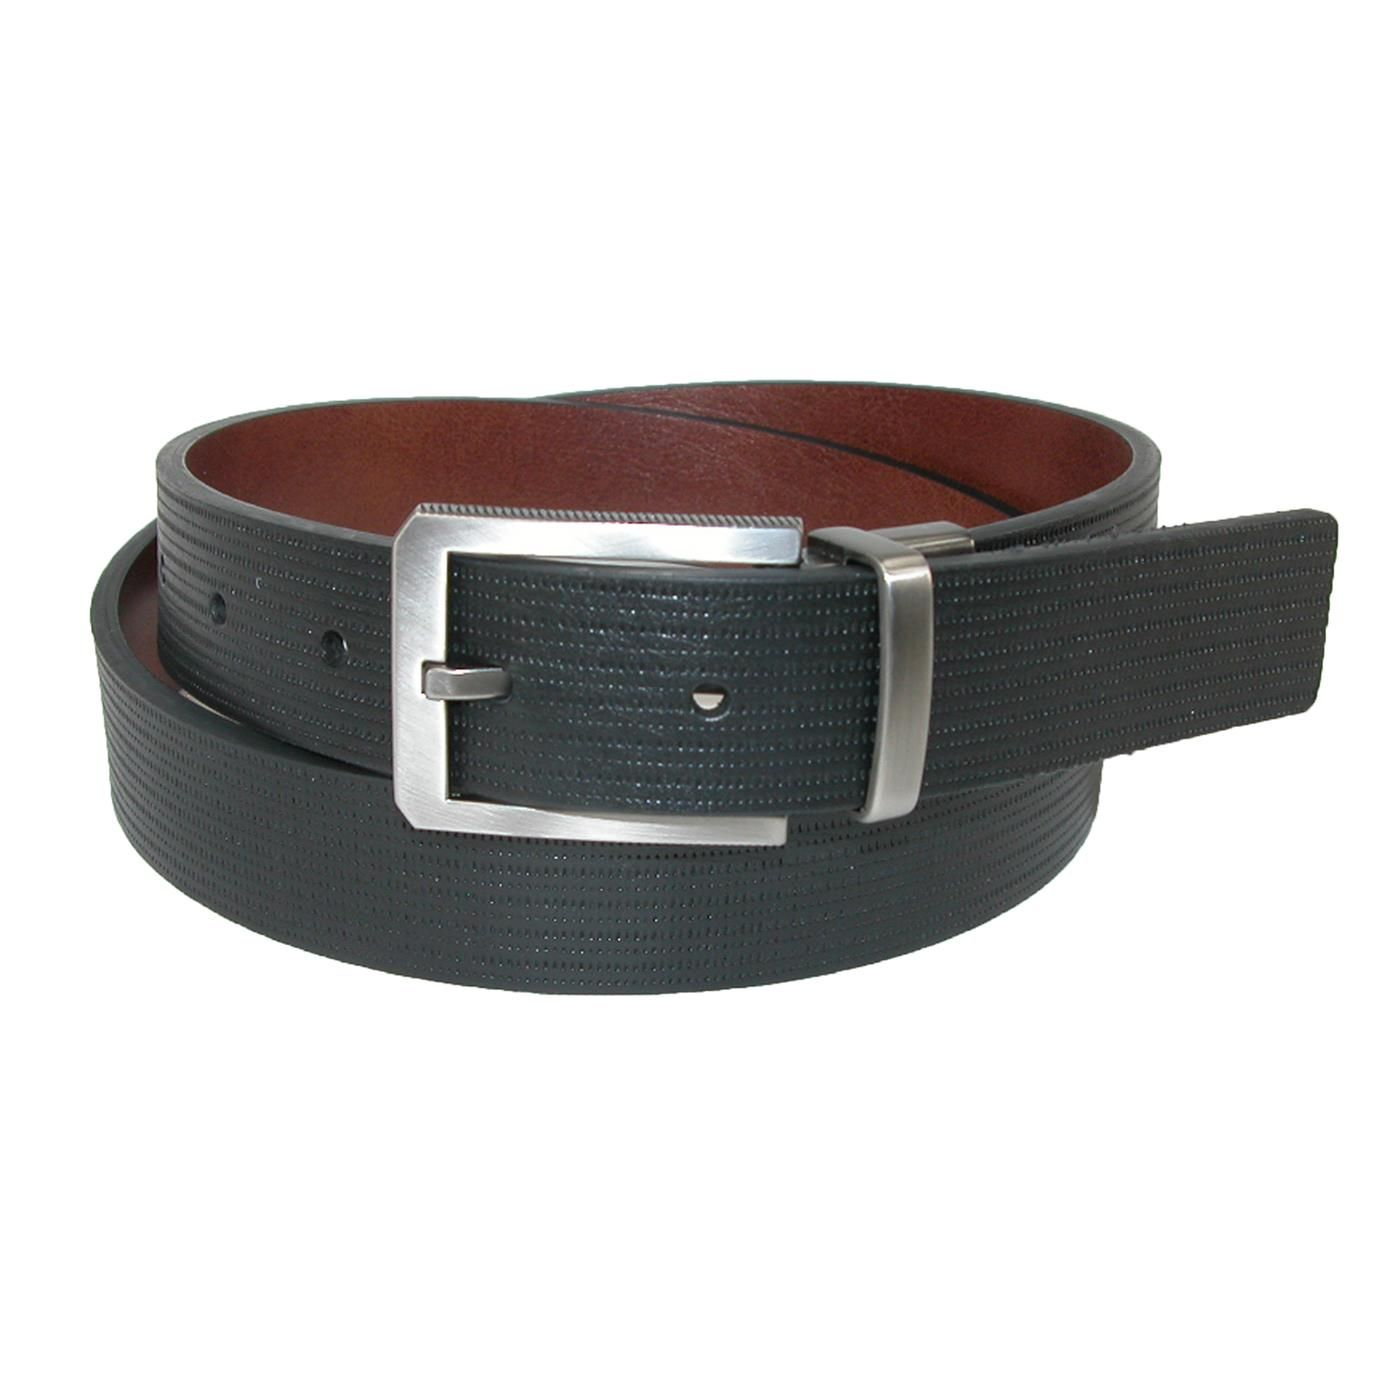 A unique cut edge bridle belt that measures 30mm wide. The brown side is smooth, and the black side has textured lines. The buckle is brushed gun metal and has ridges on the side for depth. To reverse, simply pull up on the buckle and twist.